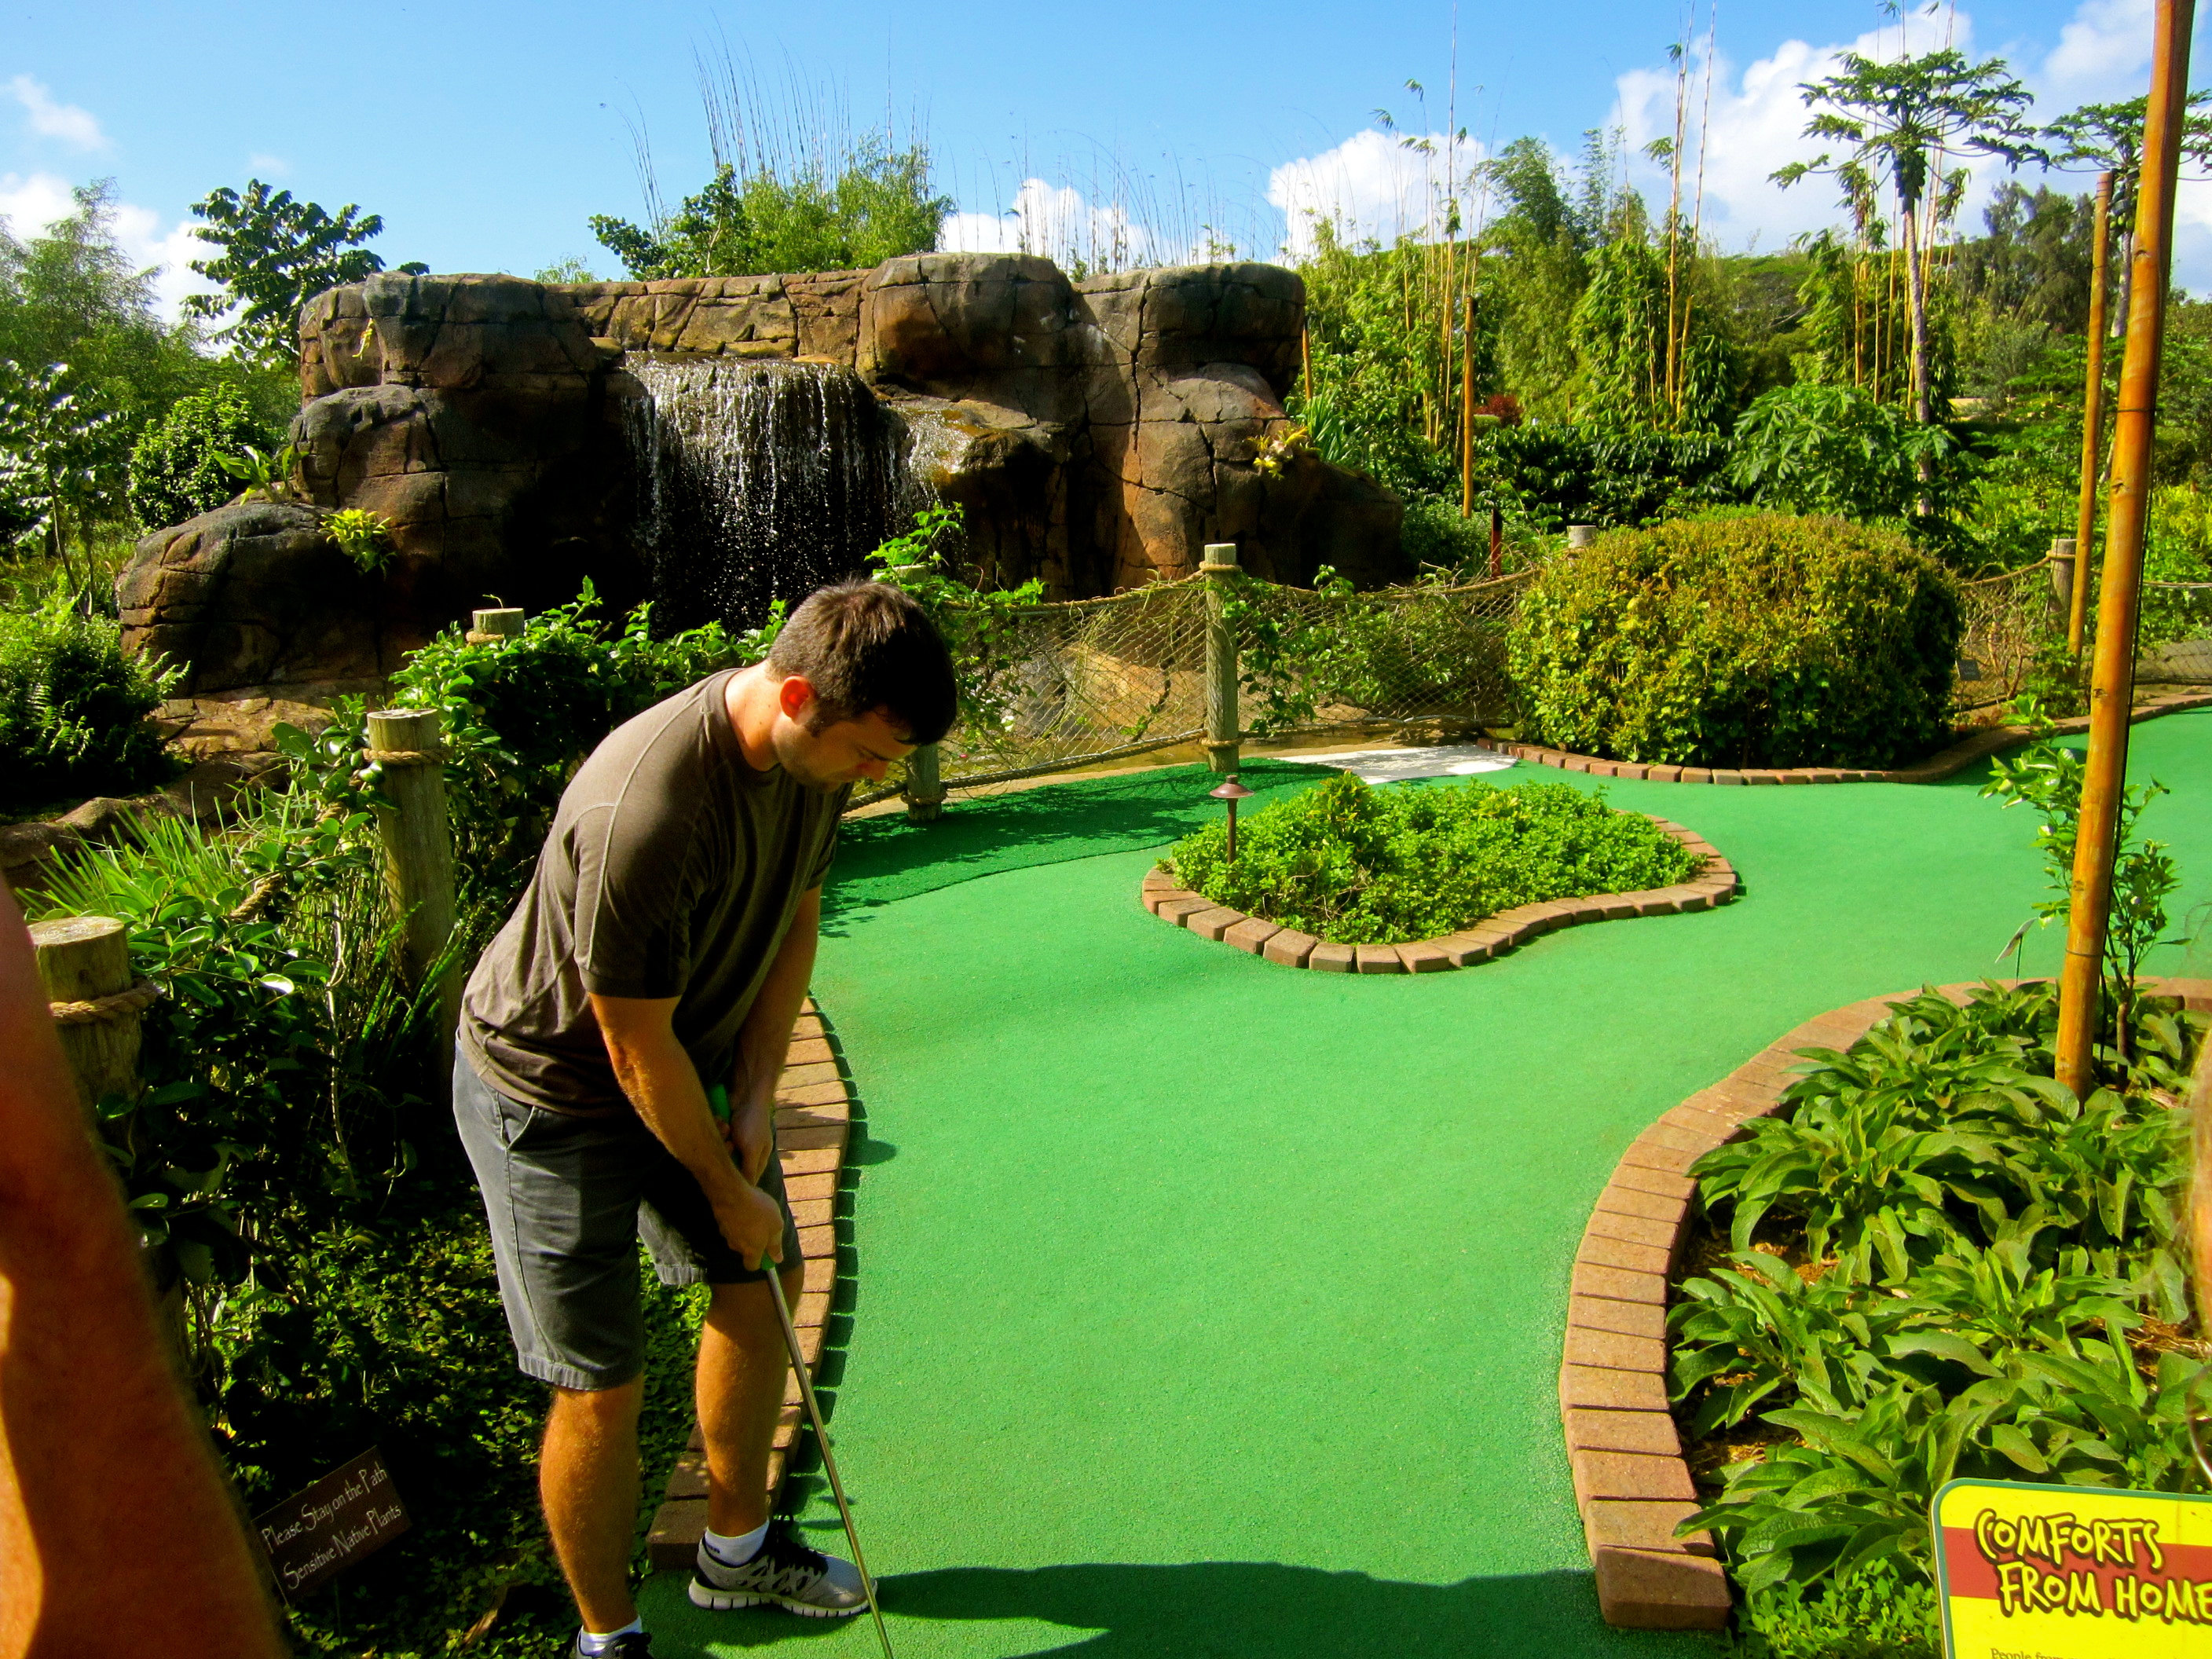 Putt away at Kauai Mini Golf & Botanical Gardens